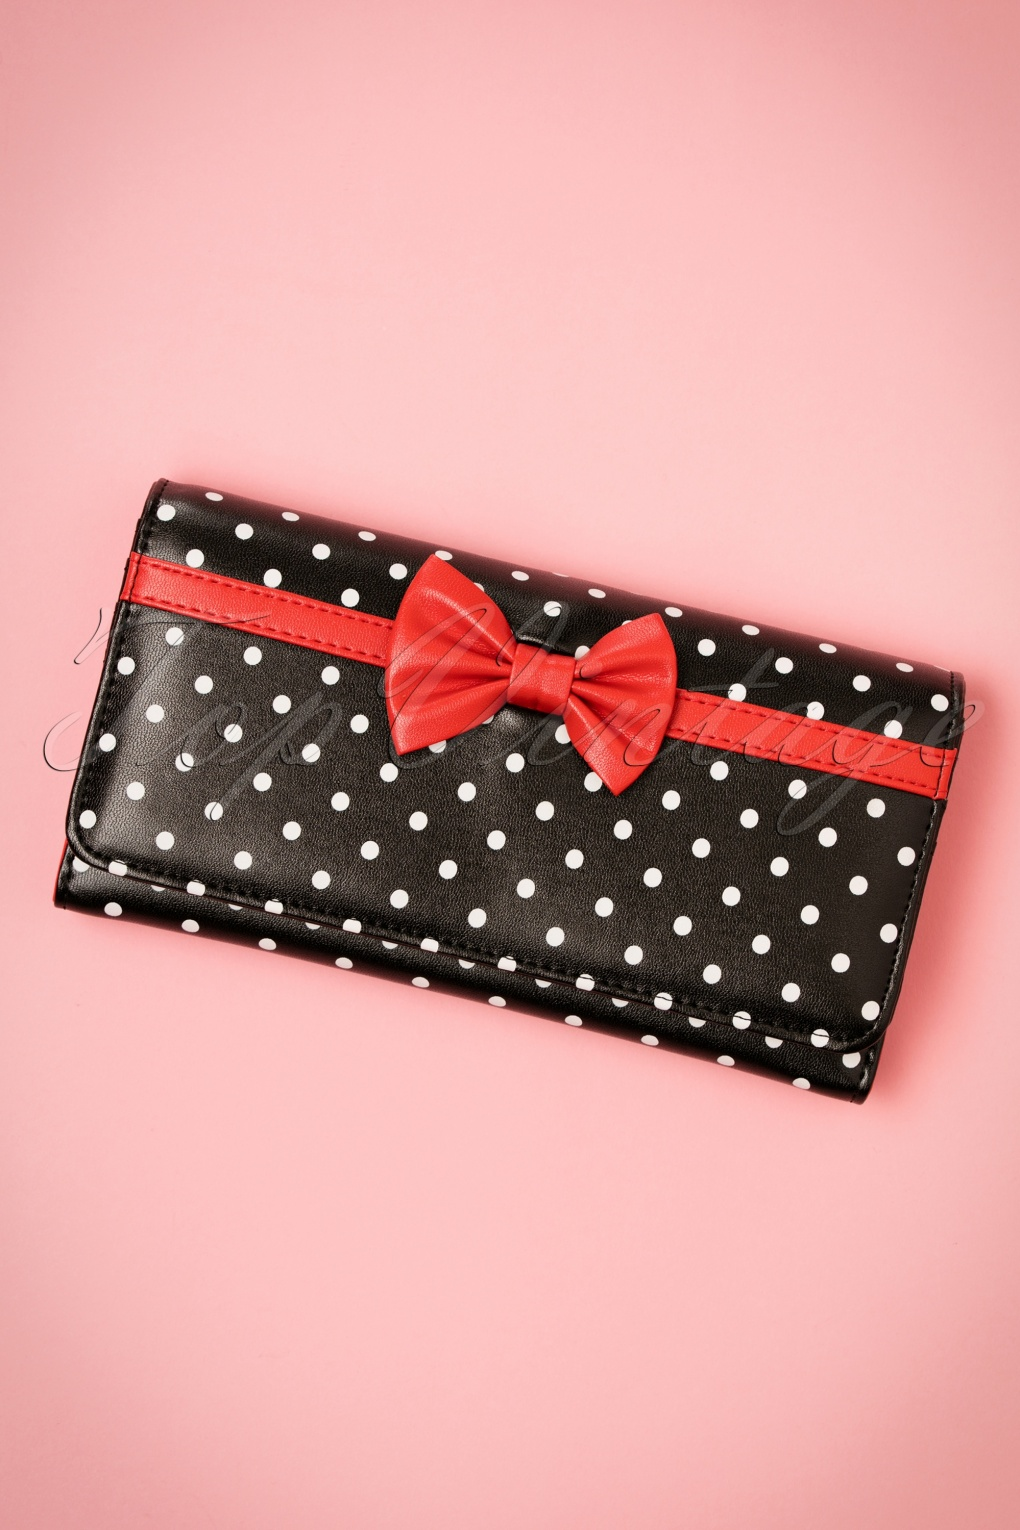 Vintage & Retro Handbags, Purses, Wallets, Bags 50s Carla Bow Polka Purse in Black and Red �17.45 AT vintagedancer.com